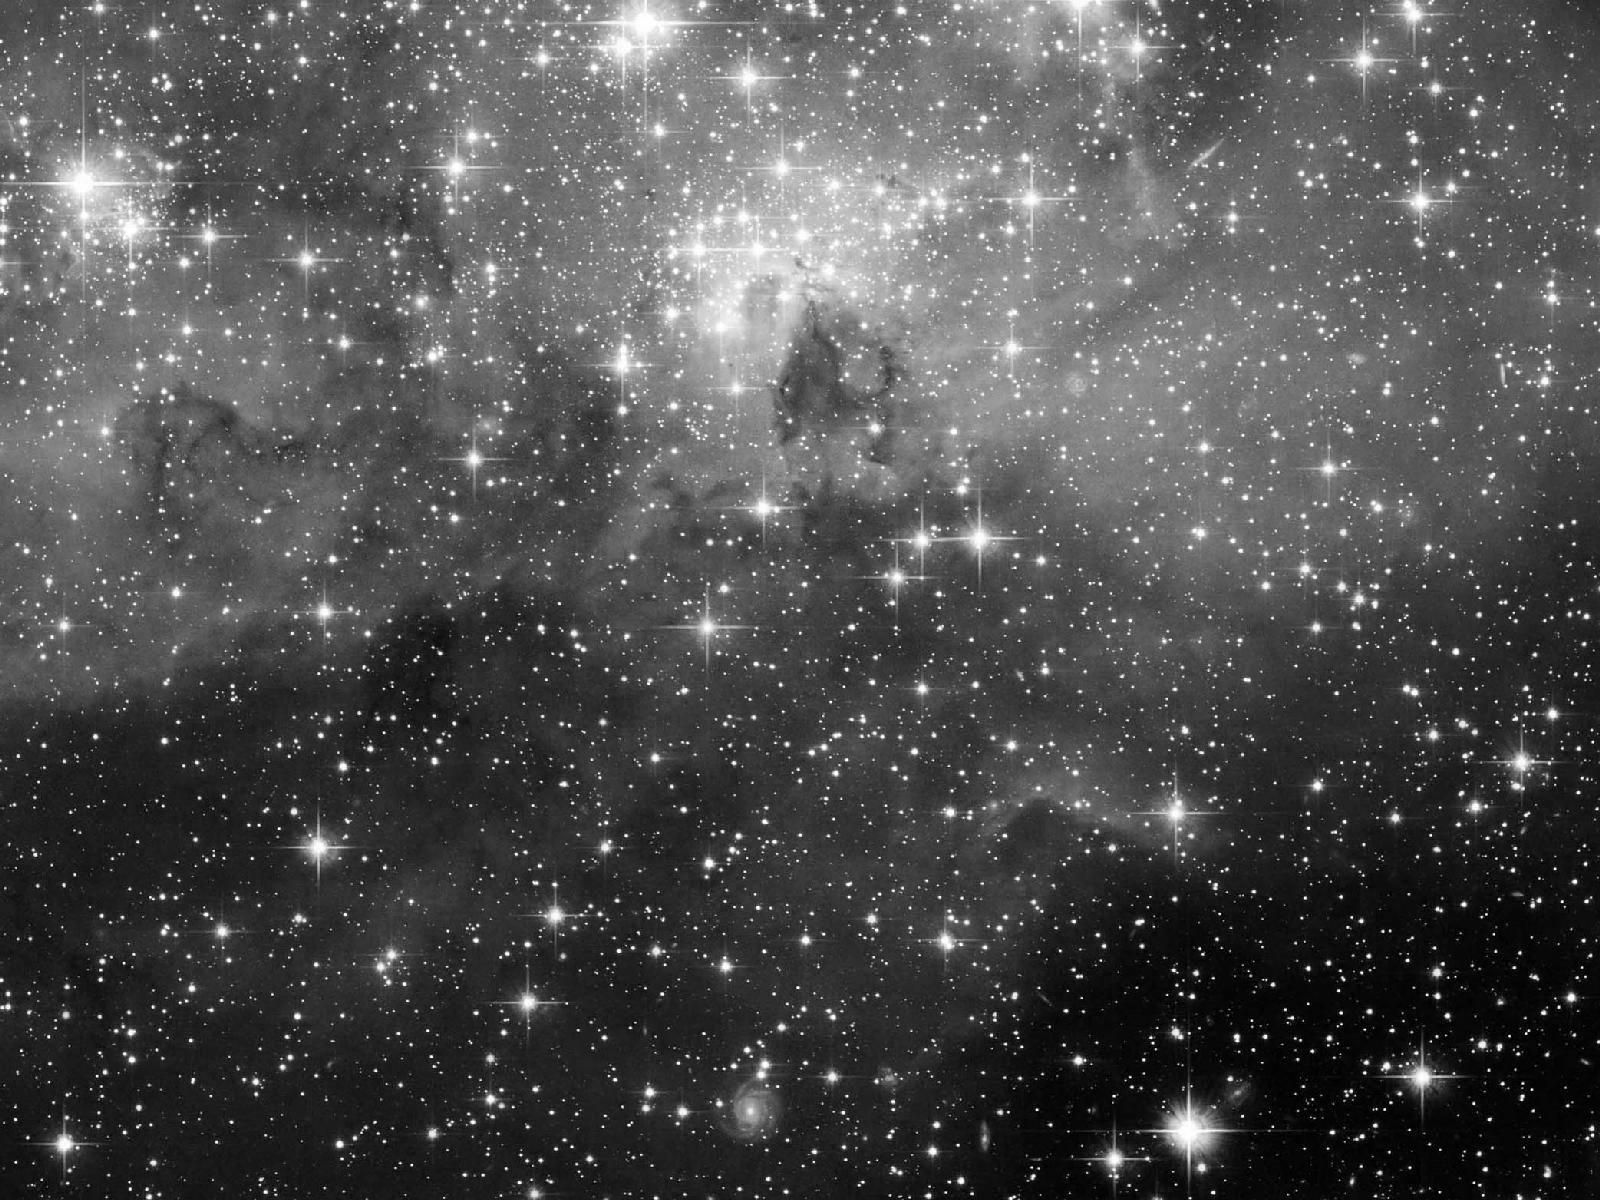 Outer Space In Greyscale Black And White Jpg 1600 1200 Night Sky Tattoos Sky Tattoos Galaxy Black And White